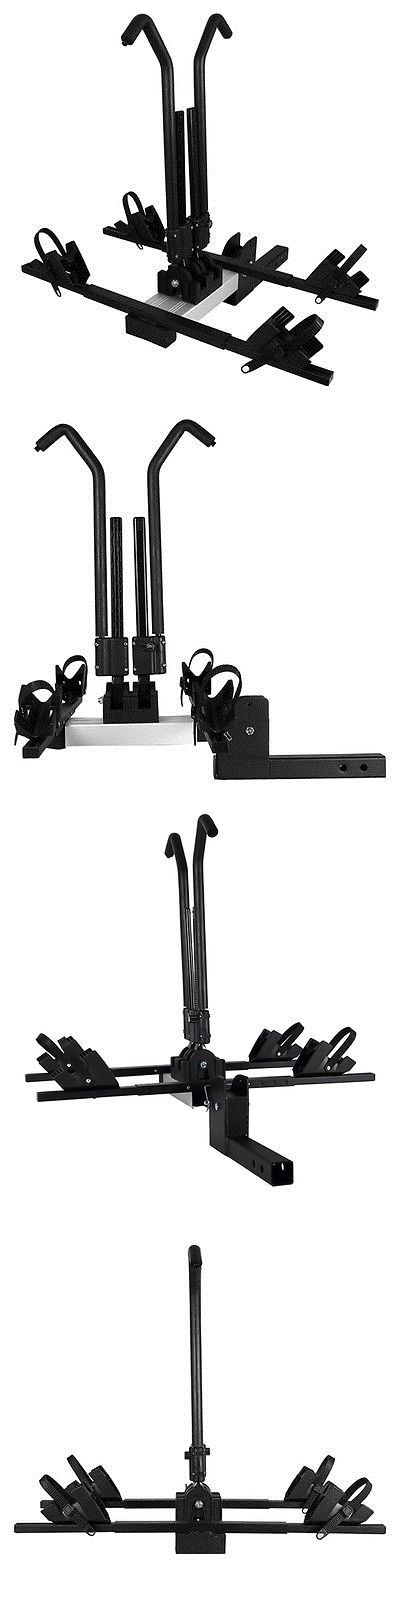 Car and Truck Racks 177849: Pilot - Tray Hitch Mount Bike Rack (2 Bike Fits 2 Receivers) -> BUY IT NOW ONLY: $189.47 on eBay!